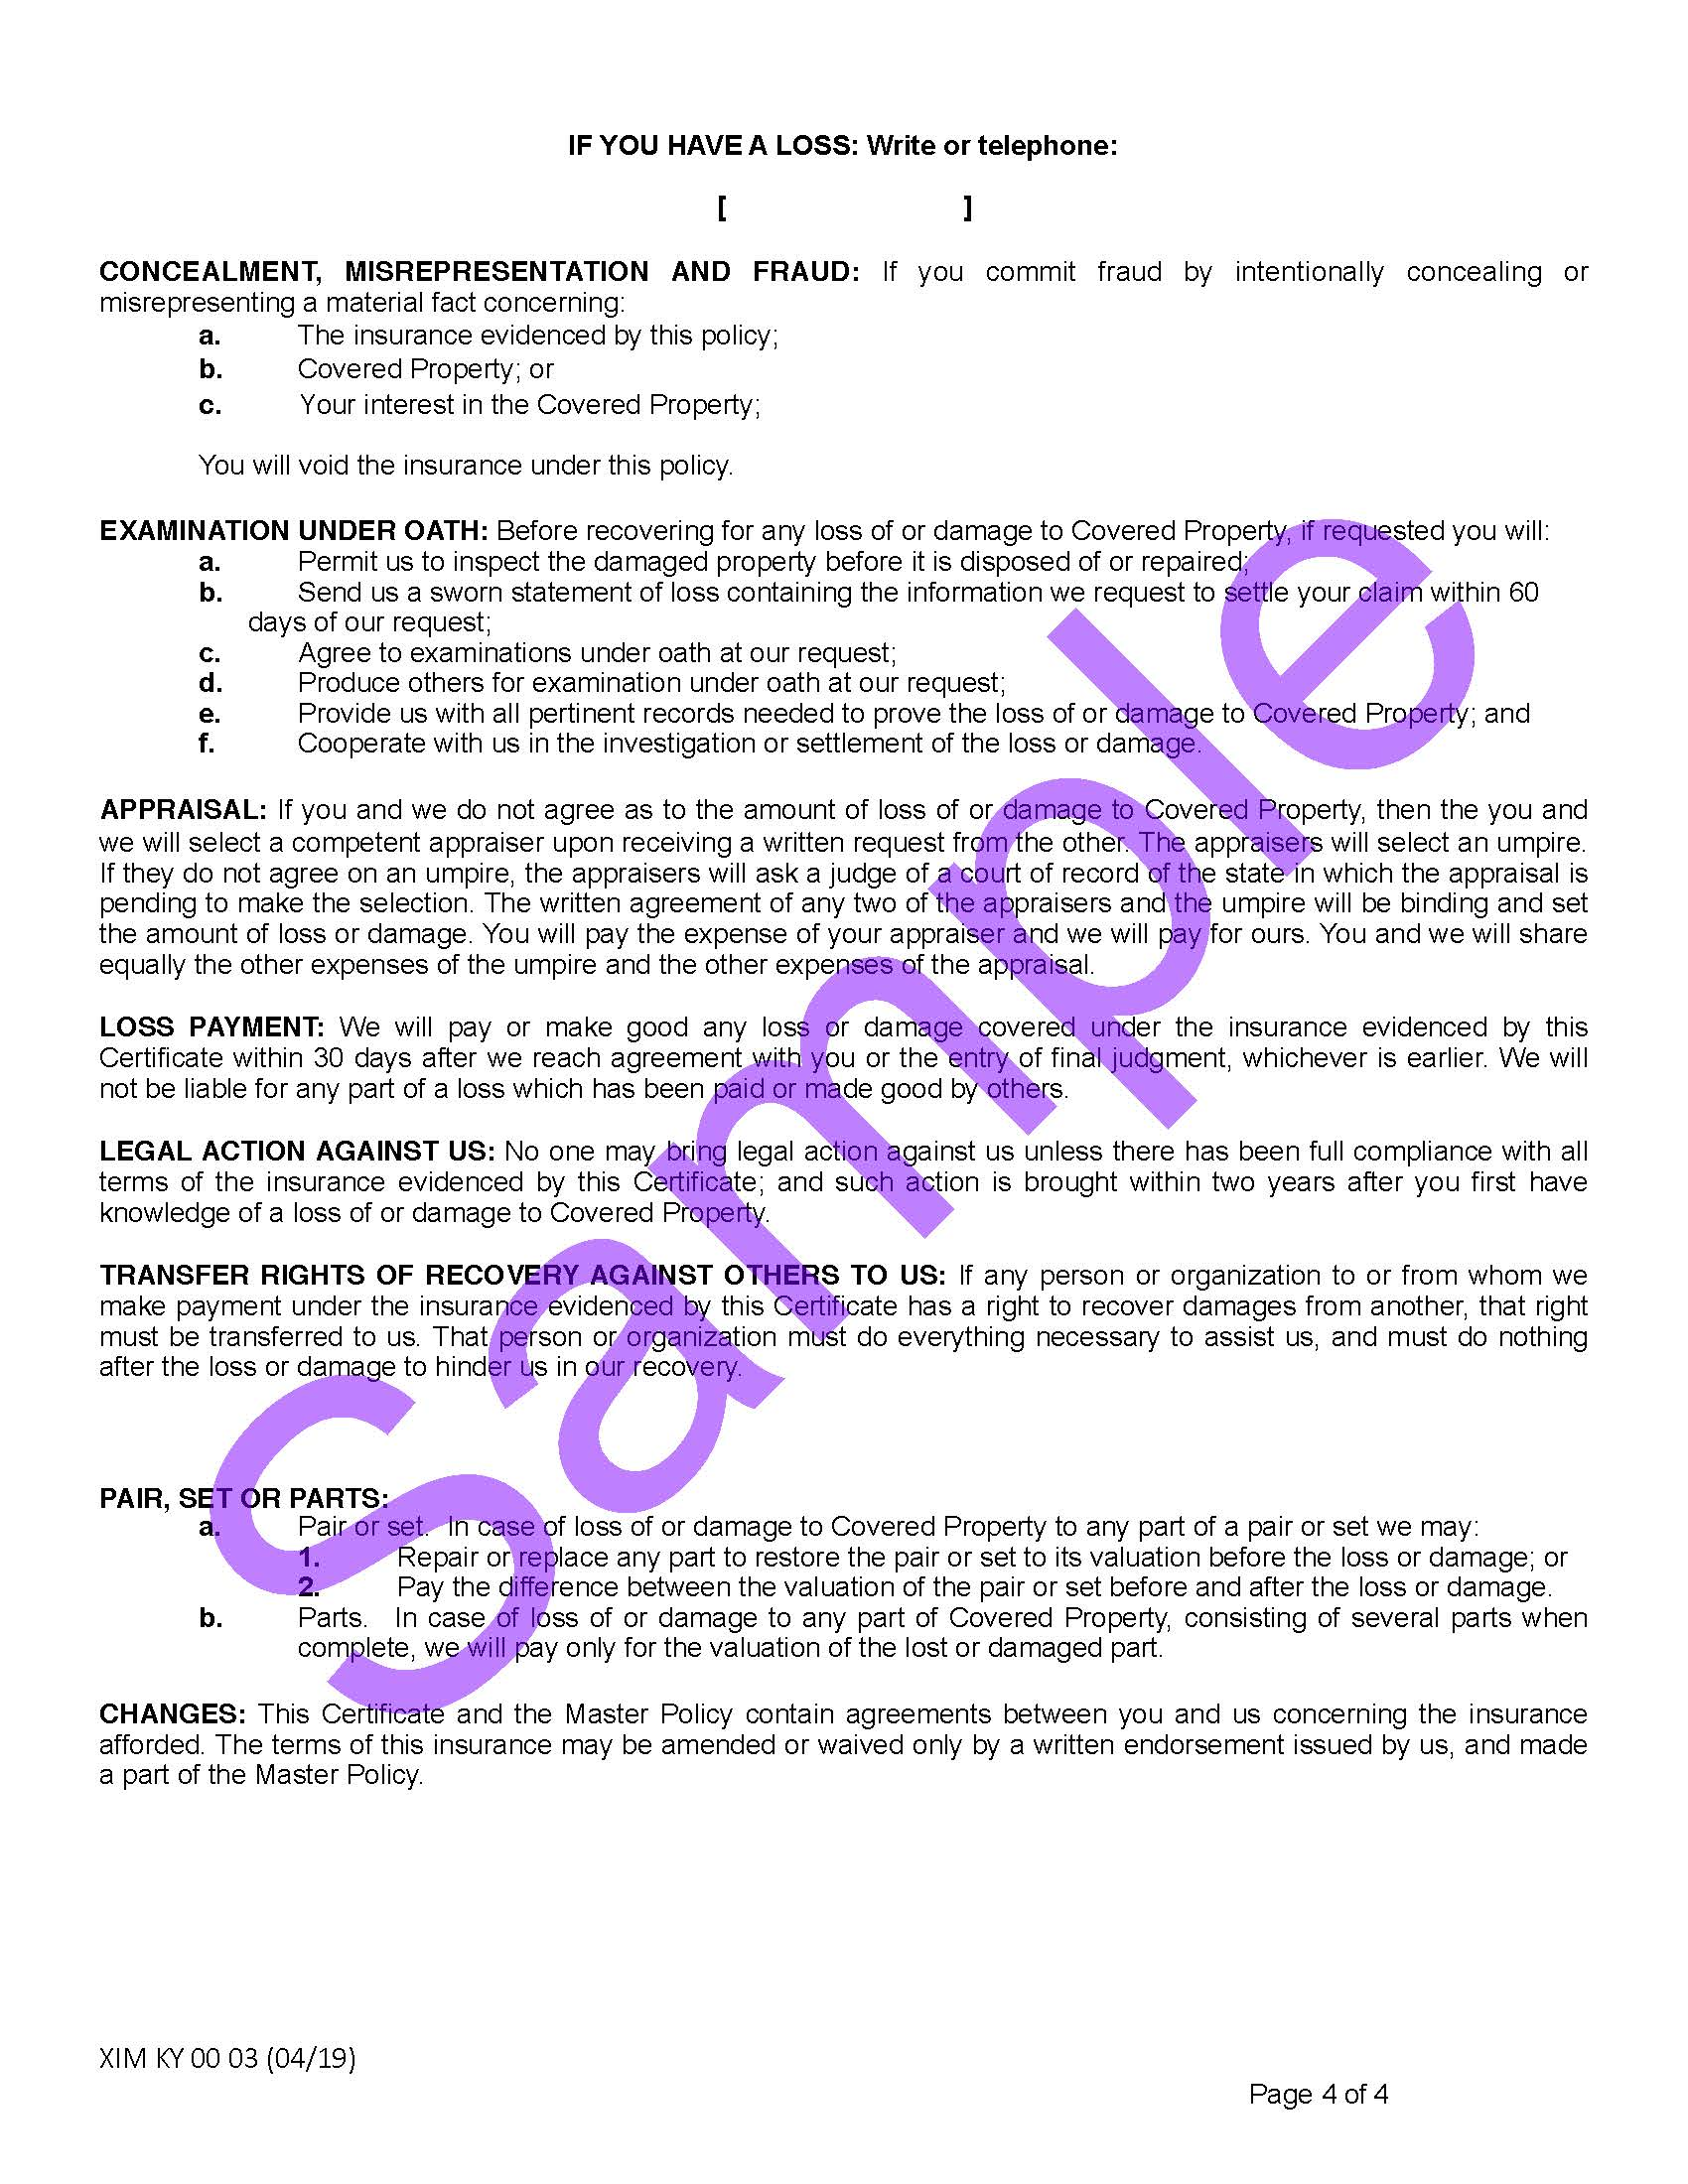 XIM KY 00 03 04 19 Kentucky Certificate of InsuranceSample_Page_4.jpg